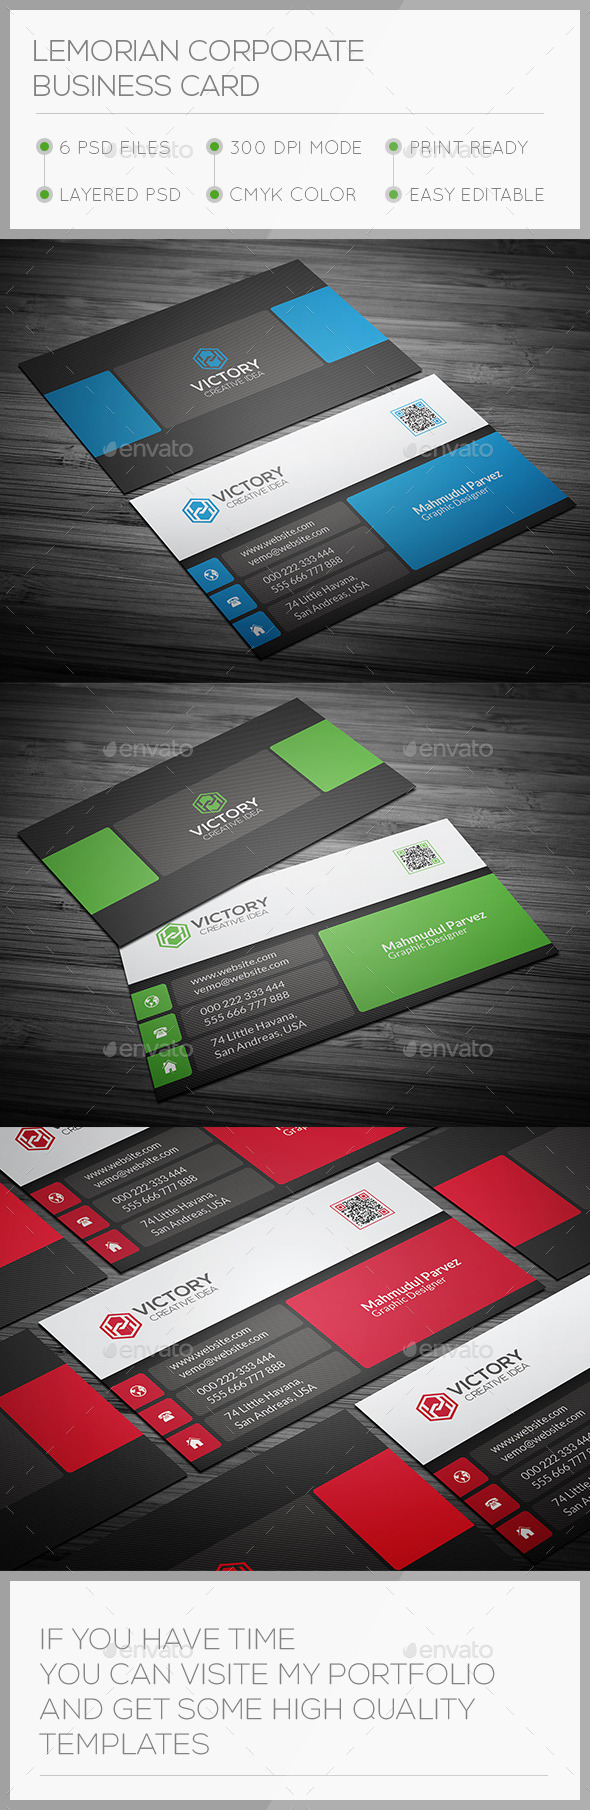 Lemorian Corporate Business Card - Corporate Business Cards